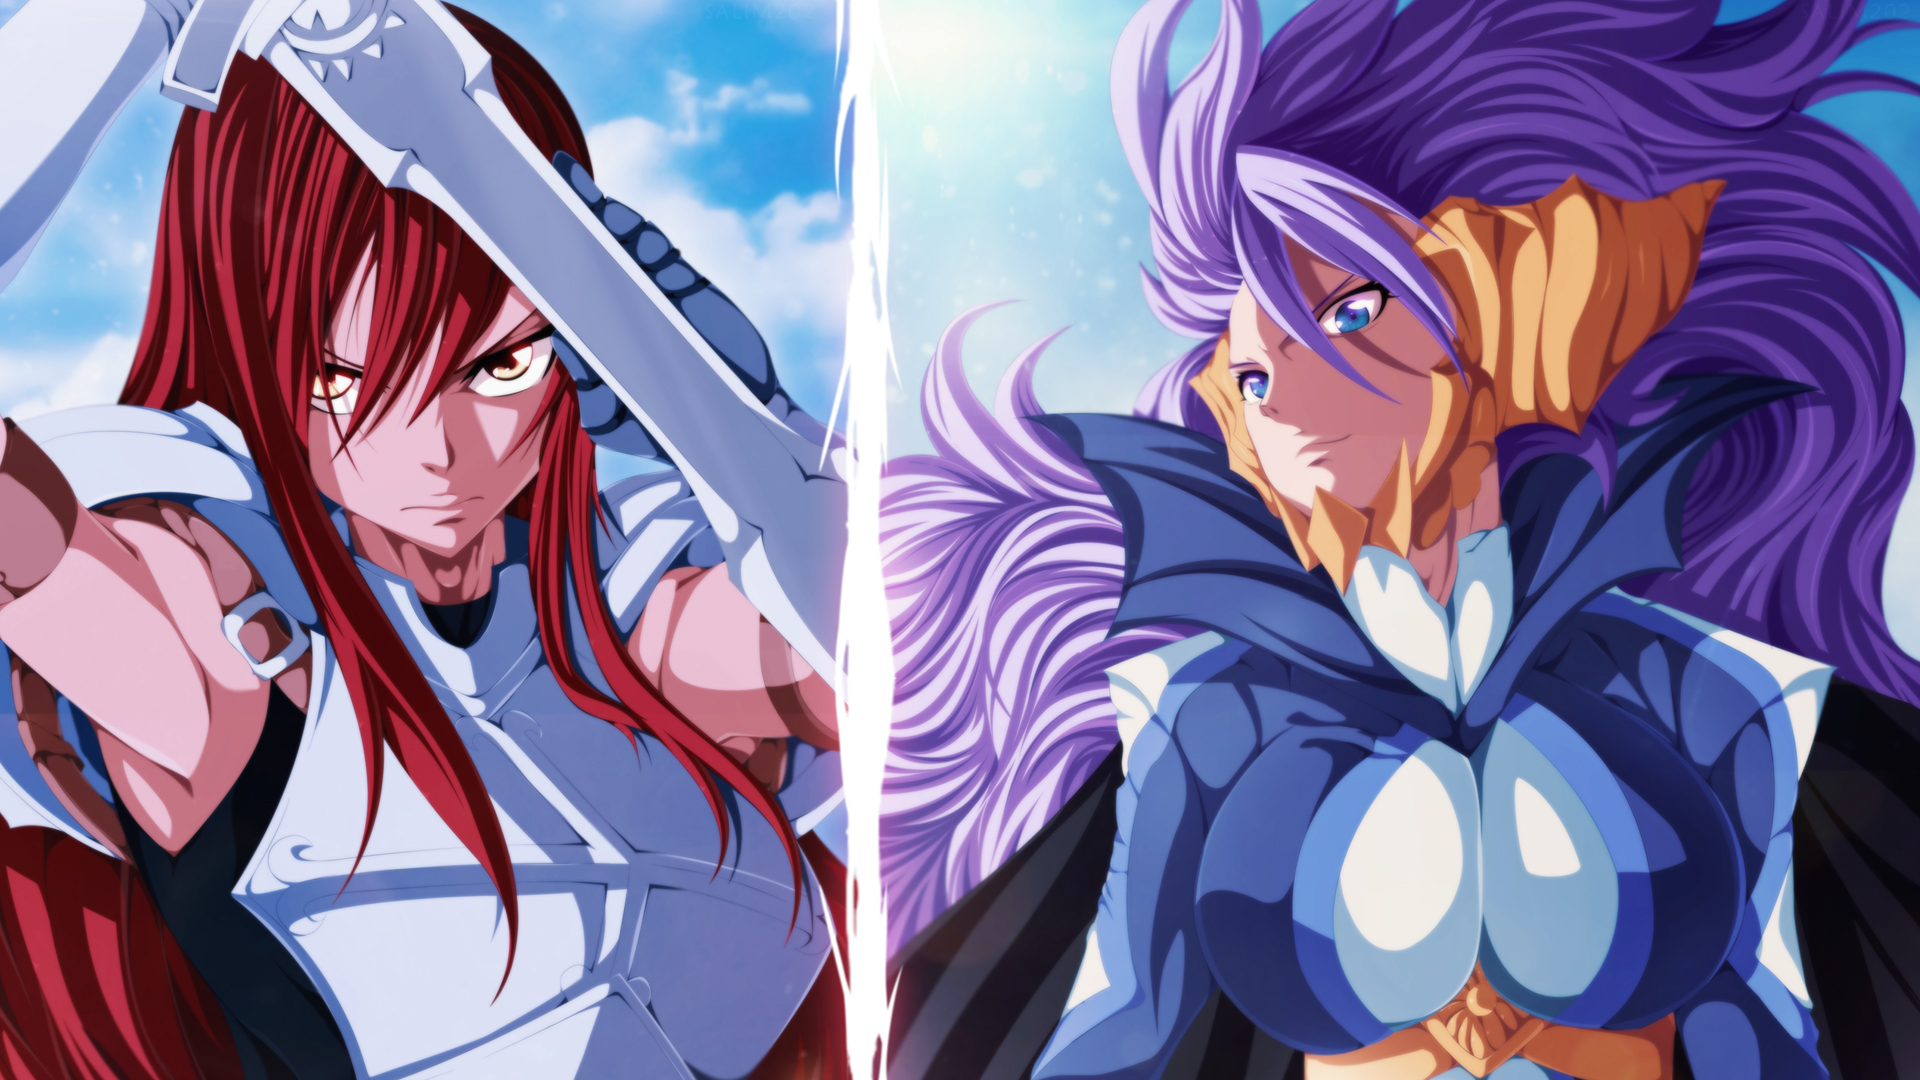 erza scarlet and mirajane staruss satal soul sitri fairy tail girl 1920x1080